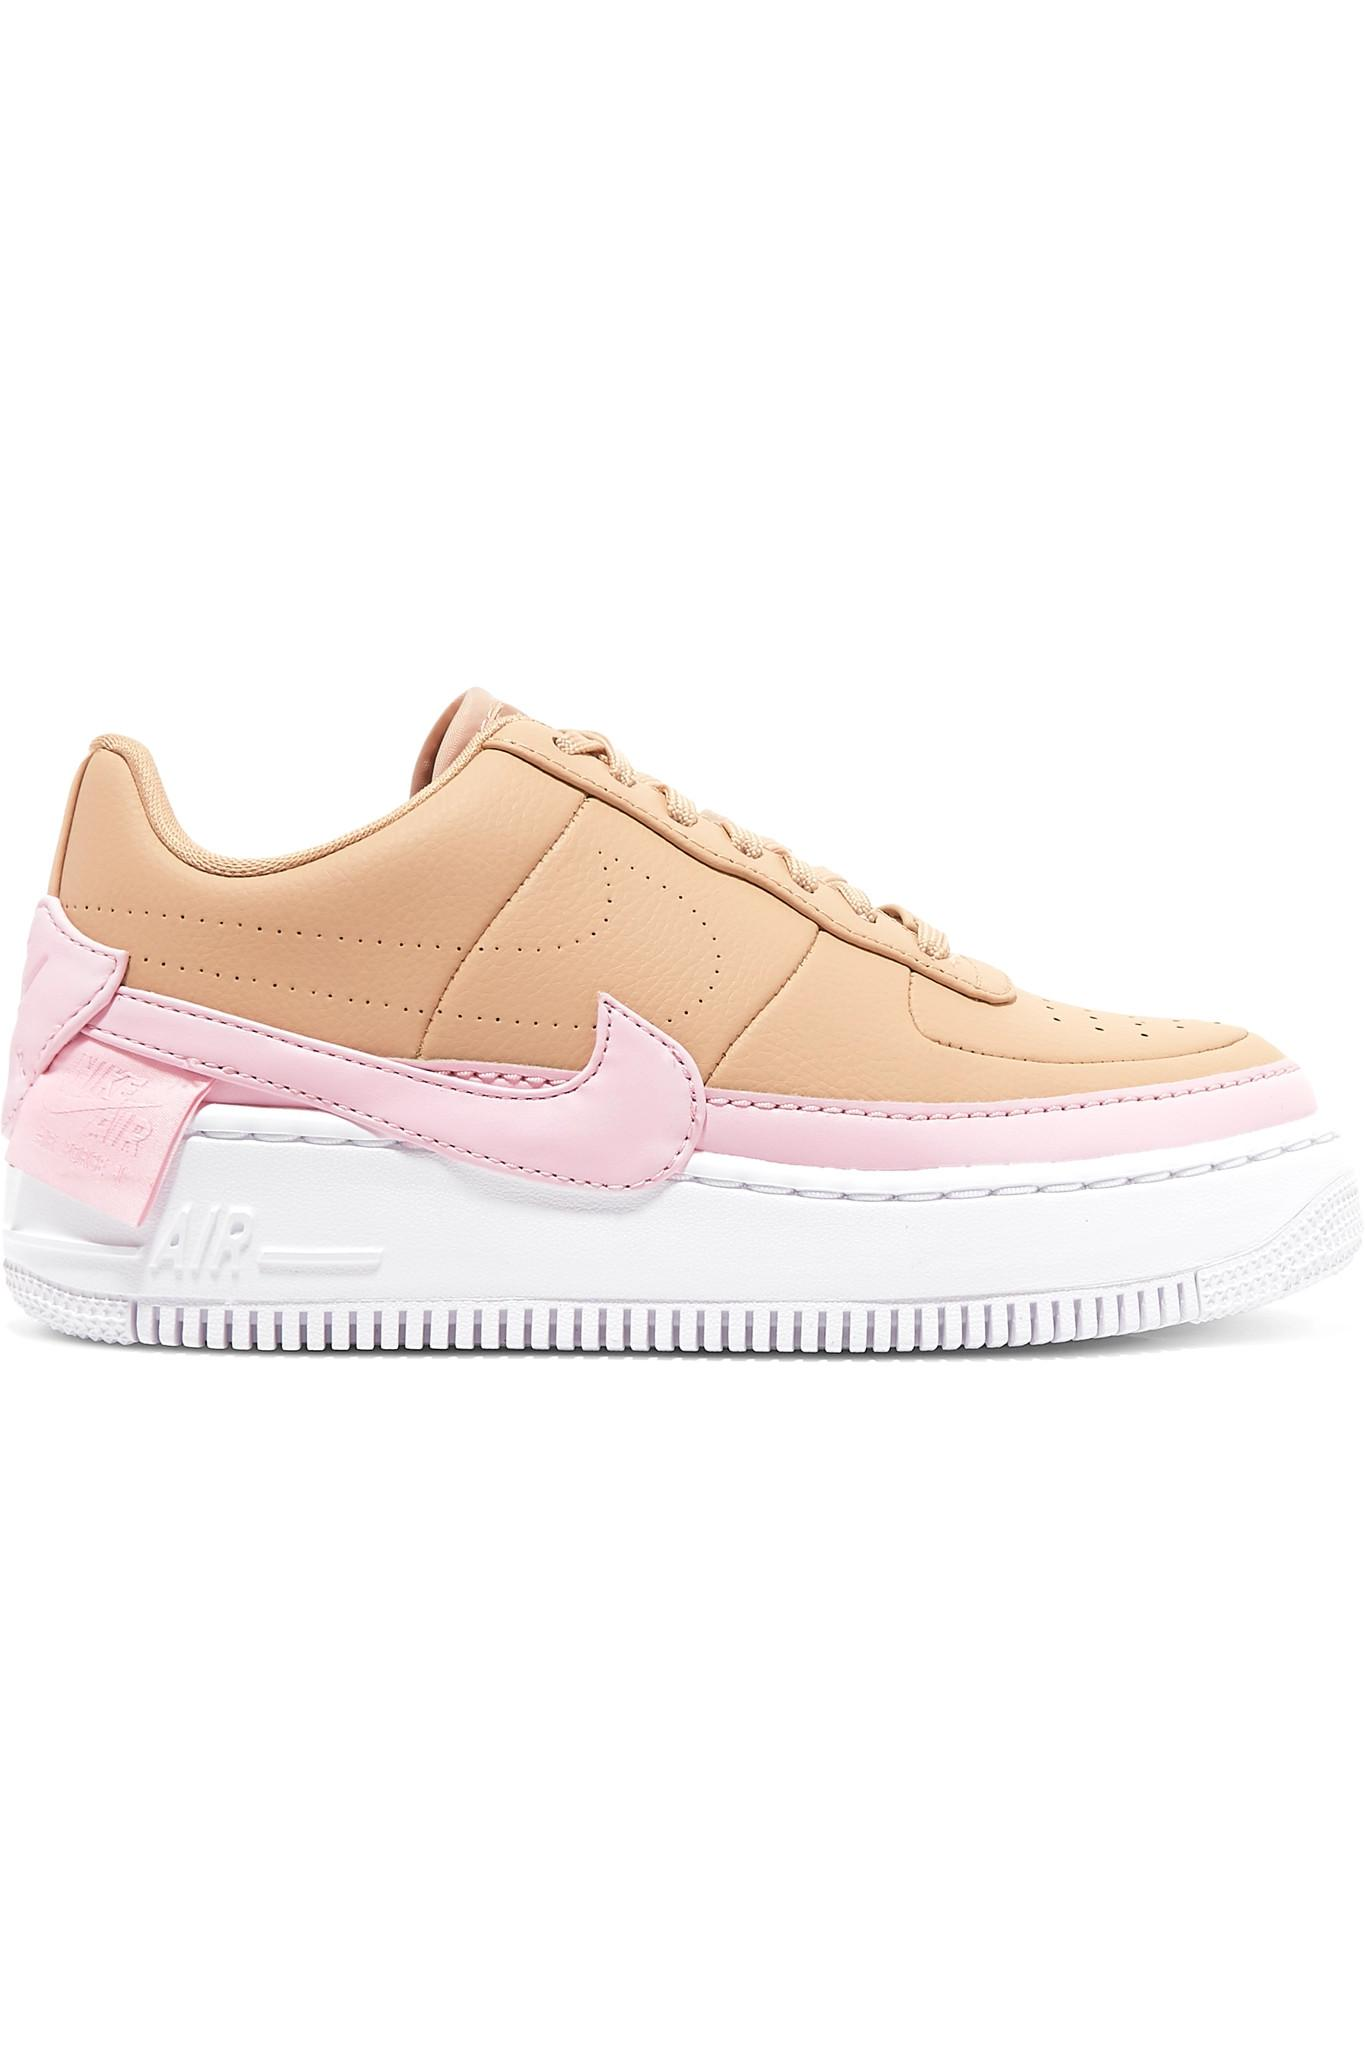 Nike. Women s Air Force 1 Jester Xx Leather Trainers 9c02de949